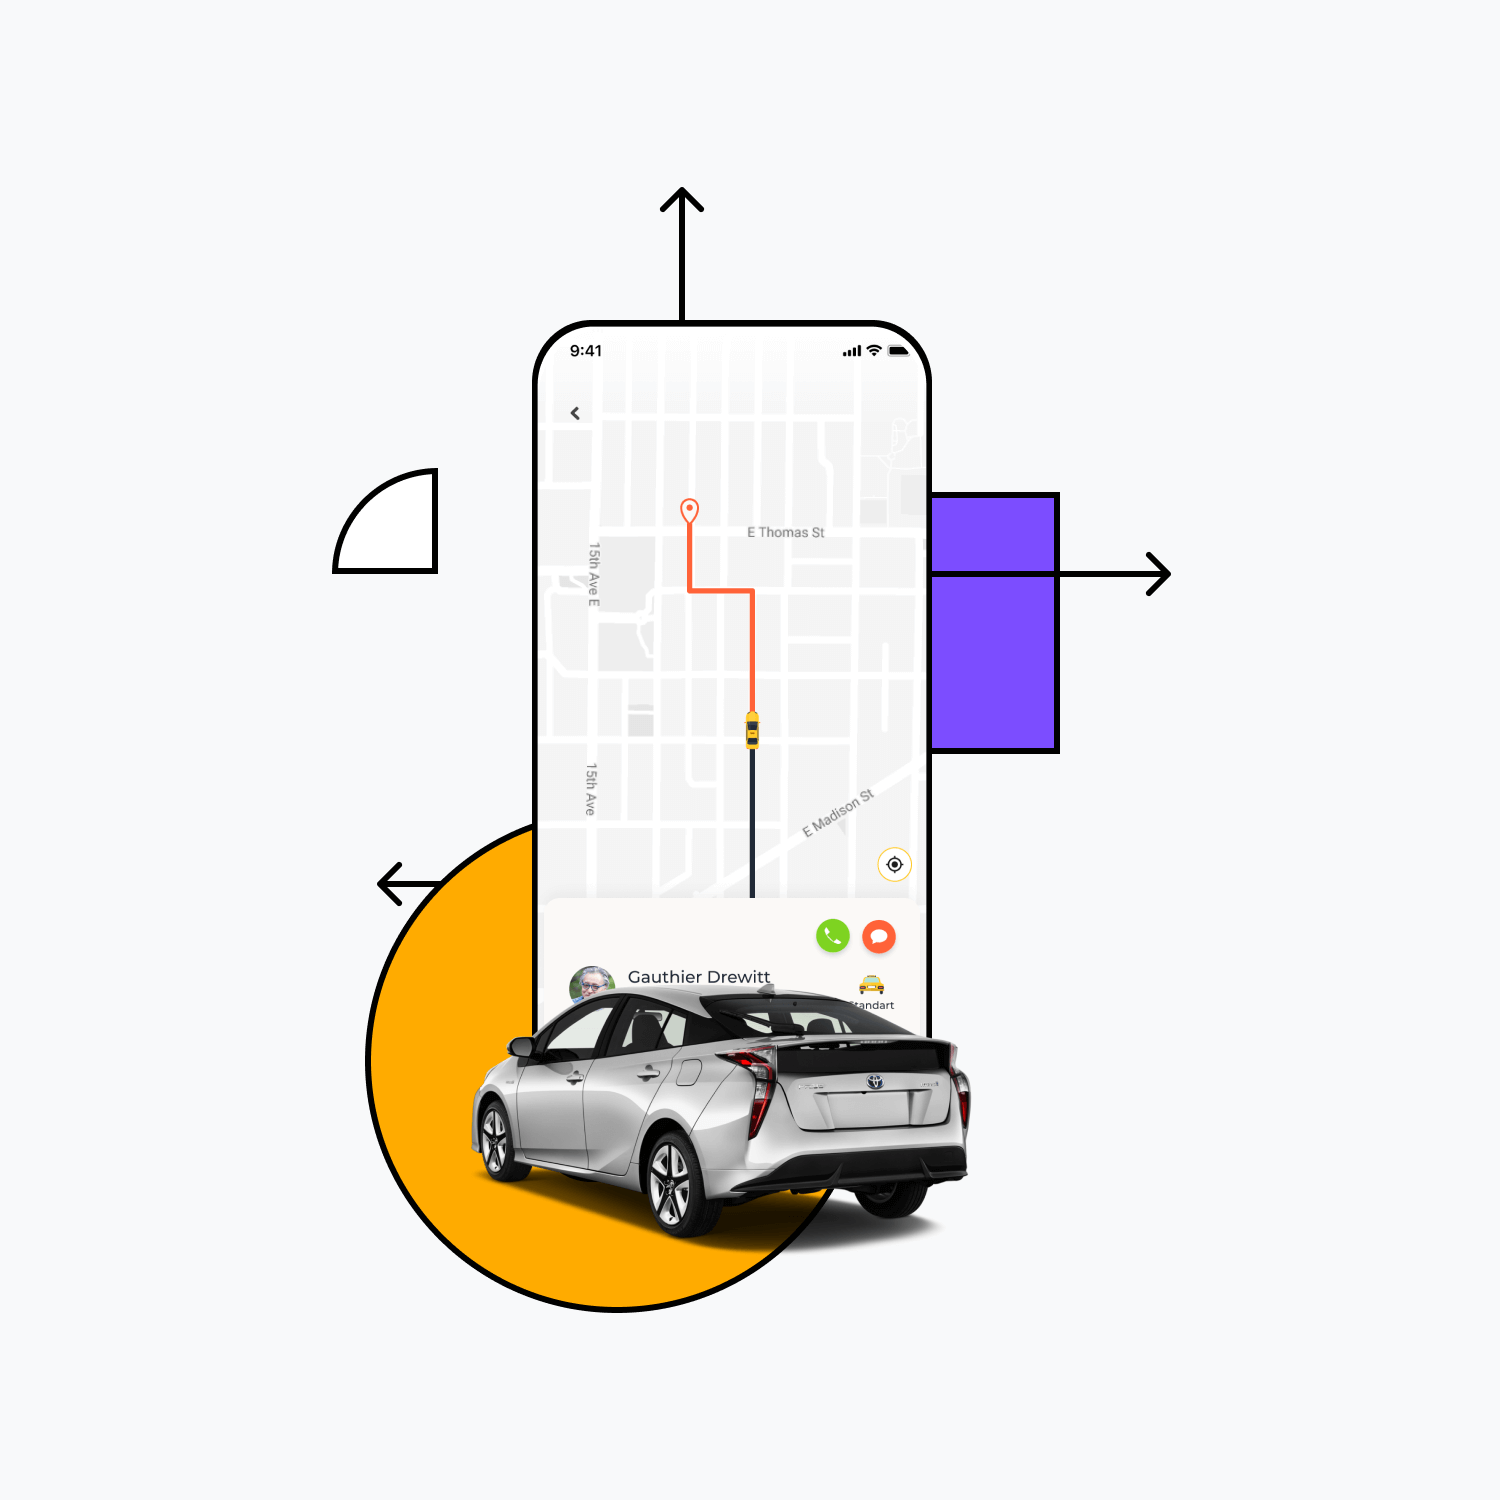 Build your own taxi booking app, today